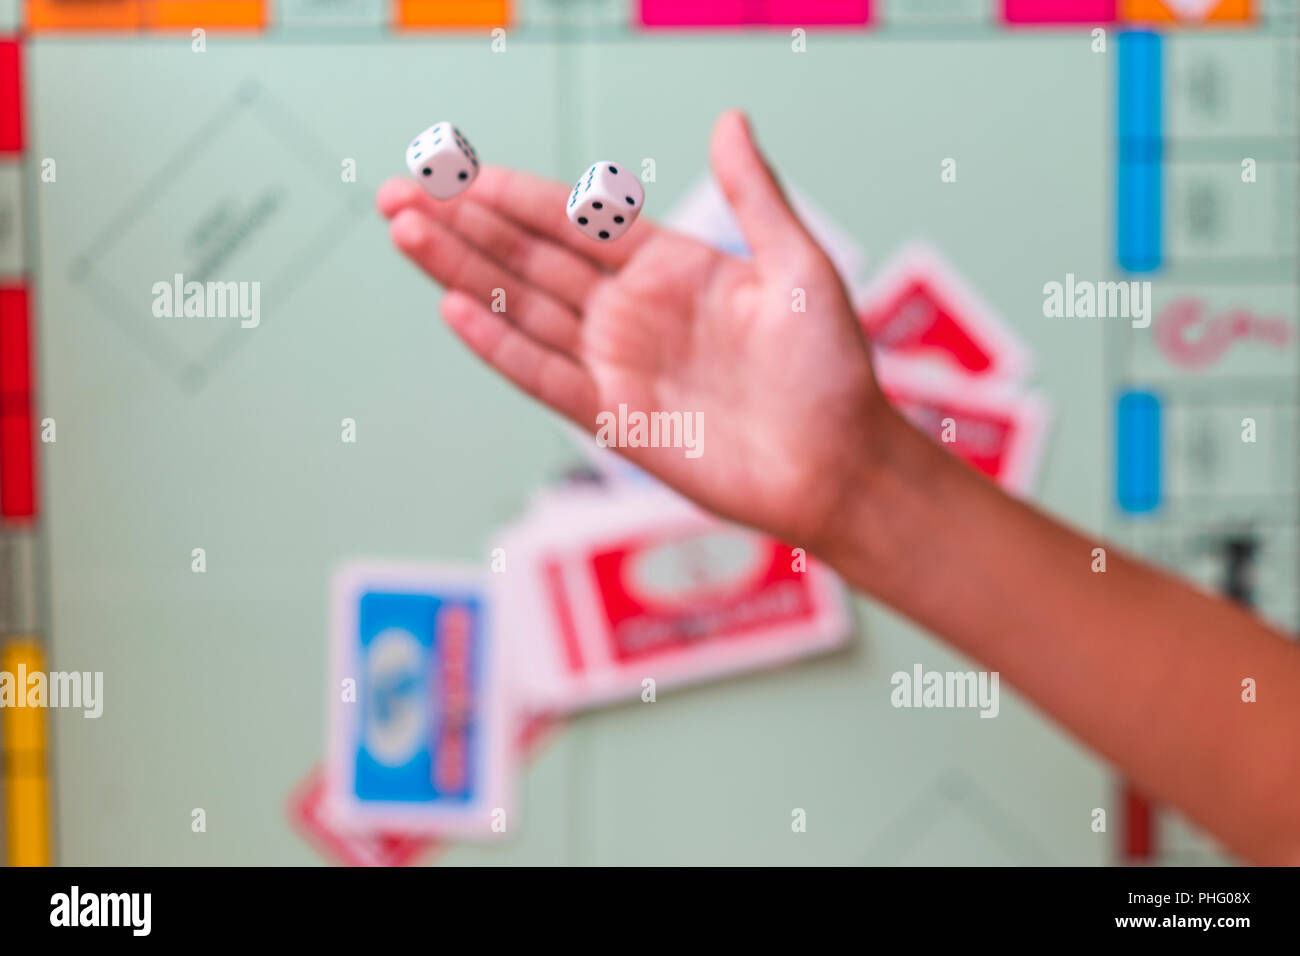 The hand throws game dice on the background of the playing field Stock Photo